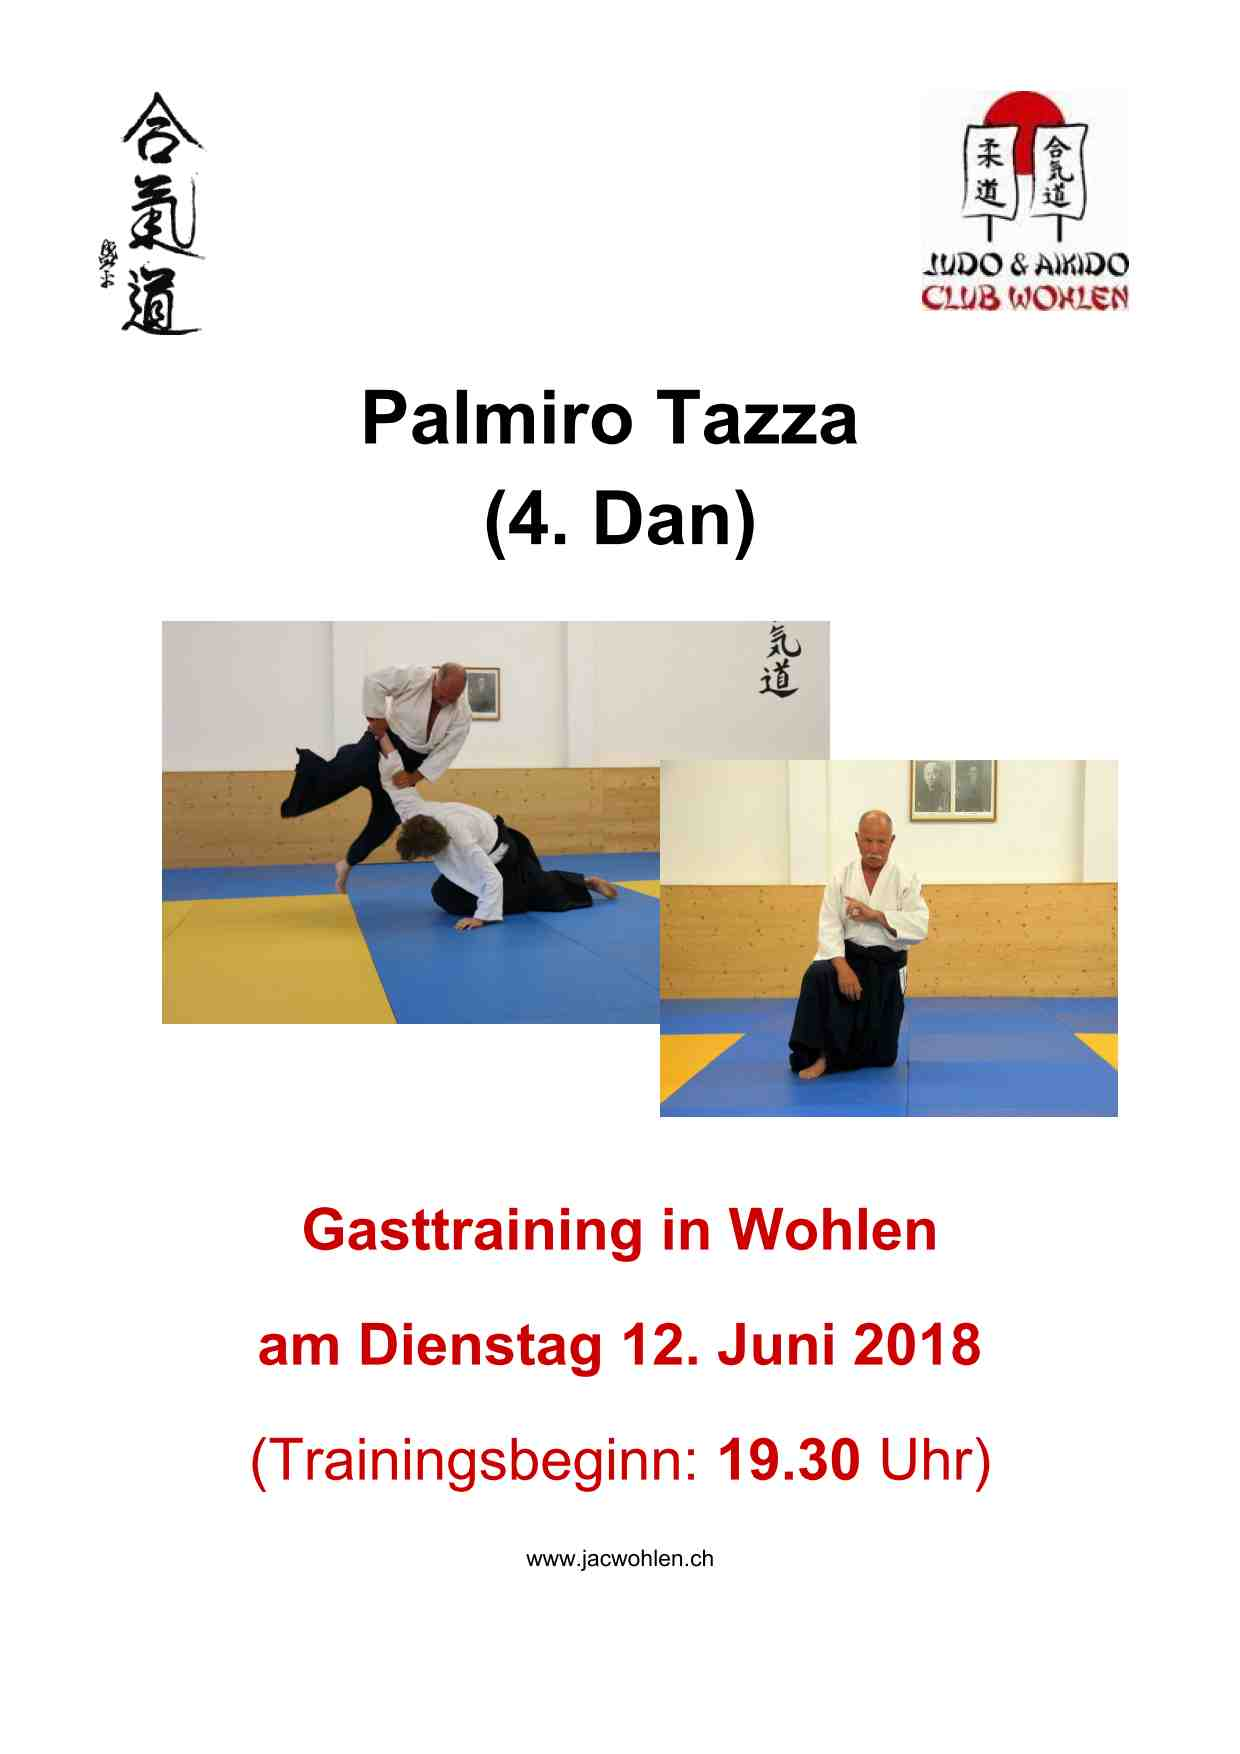 Gasttraining Palmiro Tazza in Wohlen 2018 am 12. Juni 2018